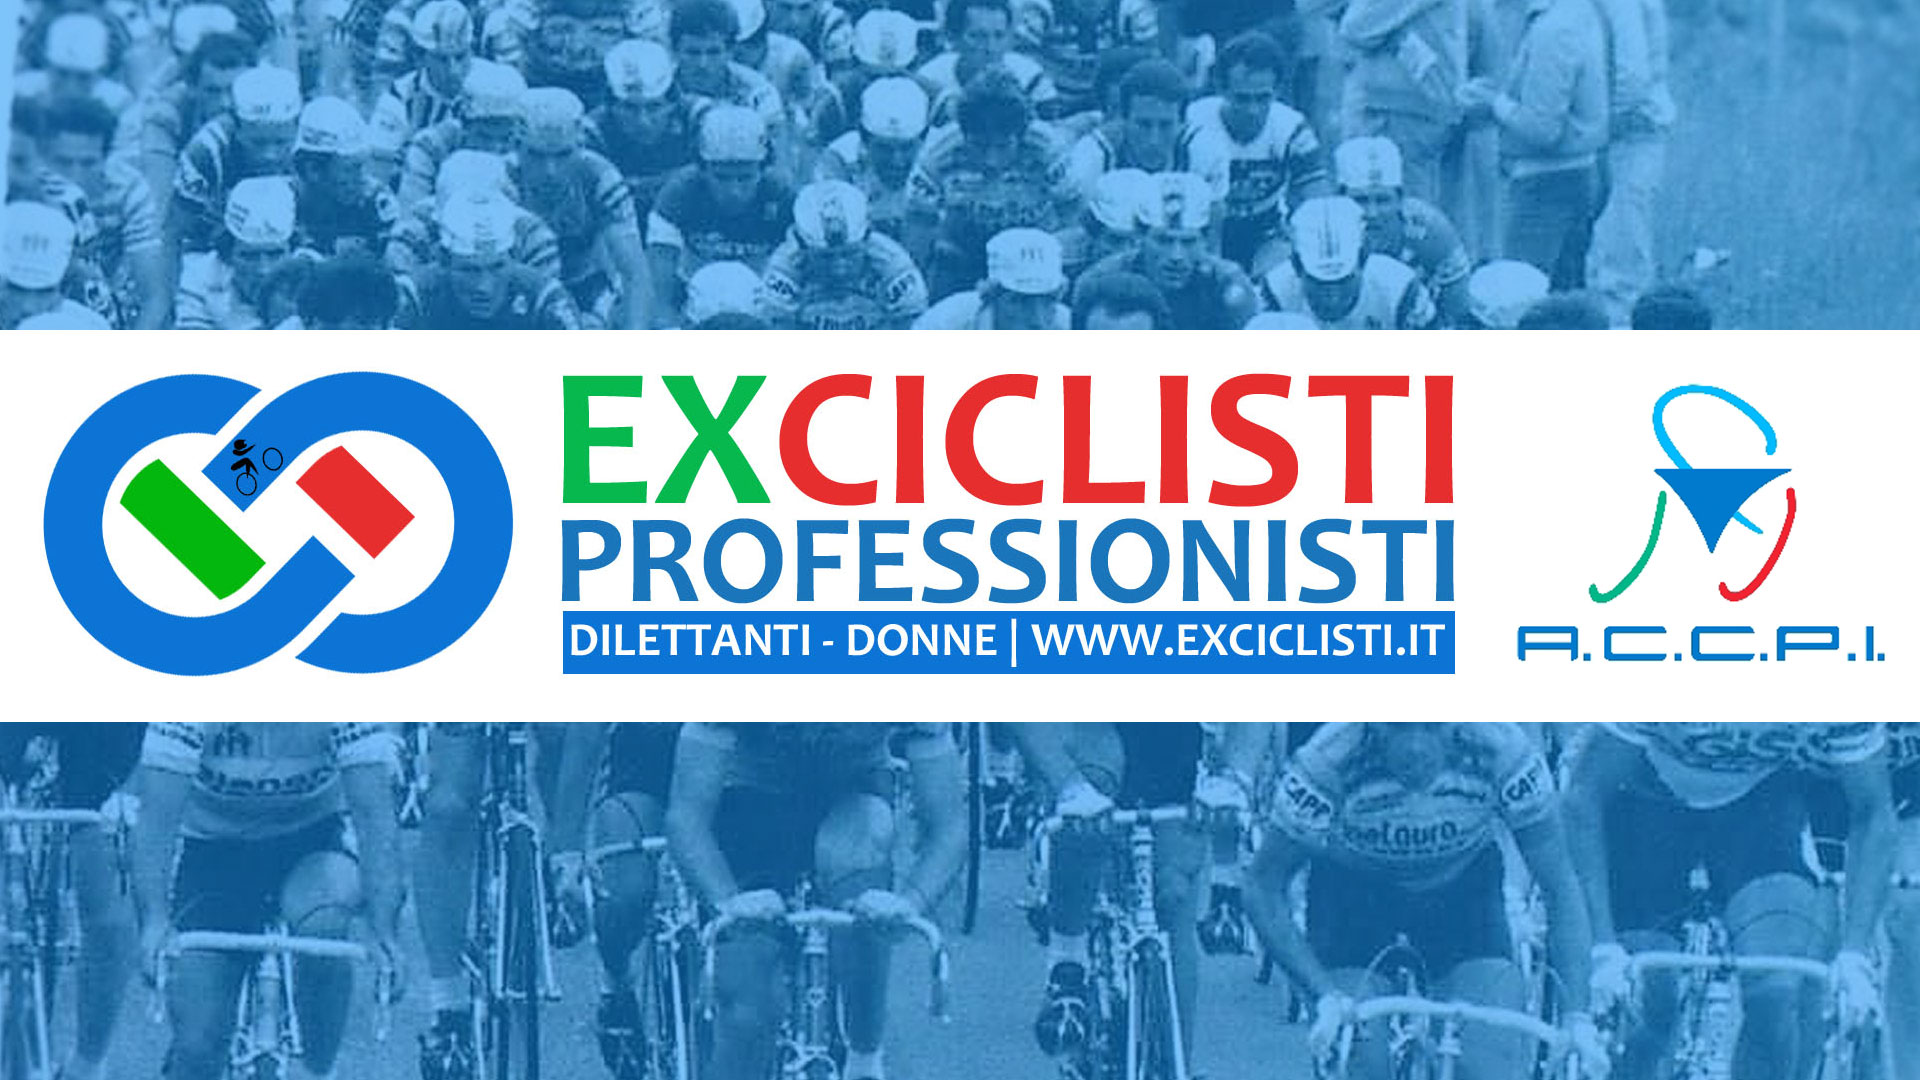 images/slide/sito-ciclismo-ex.jpg